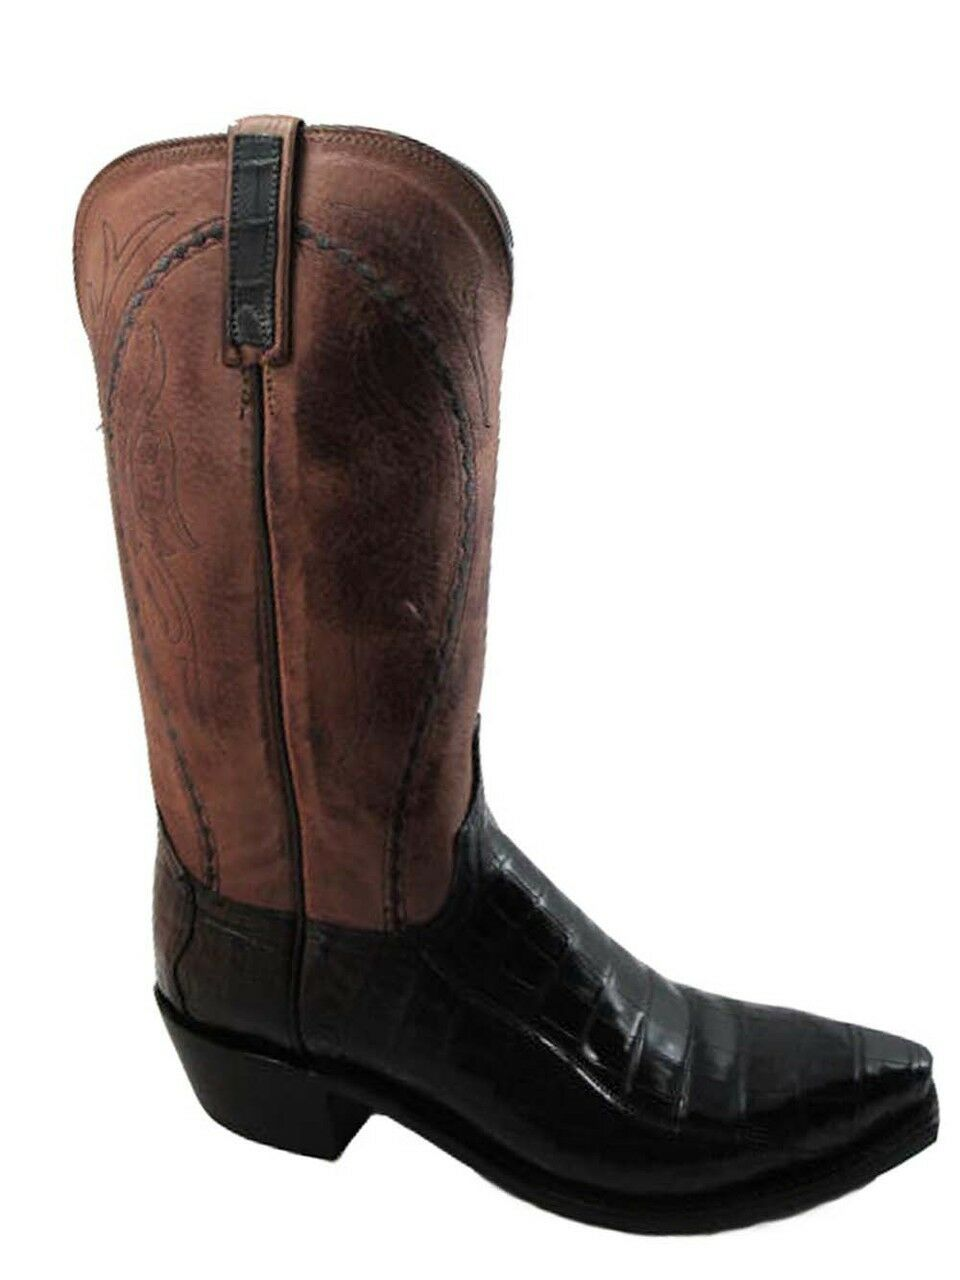 Lucchese Men's 1883 N9495.54 Ultra Belly Caiman Tail